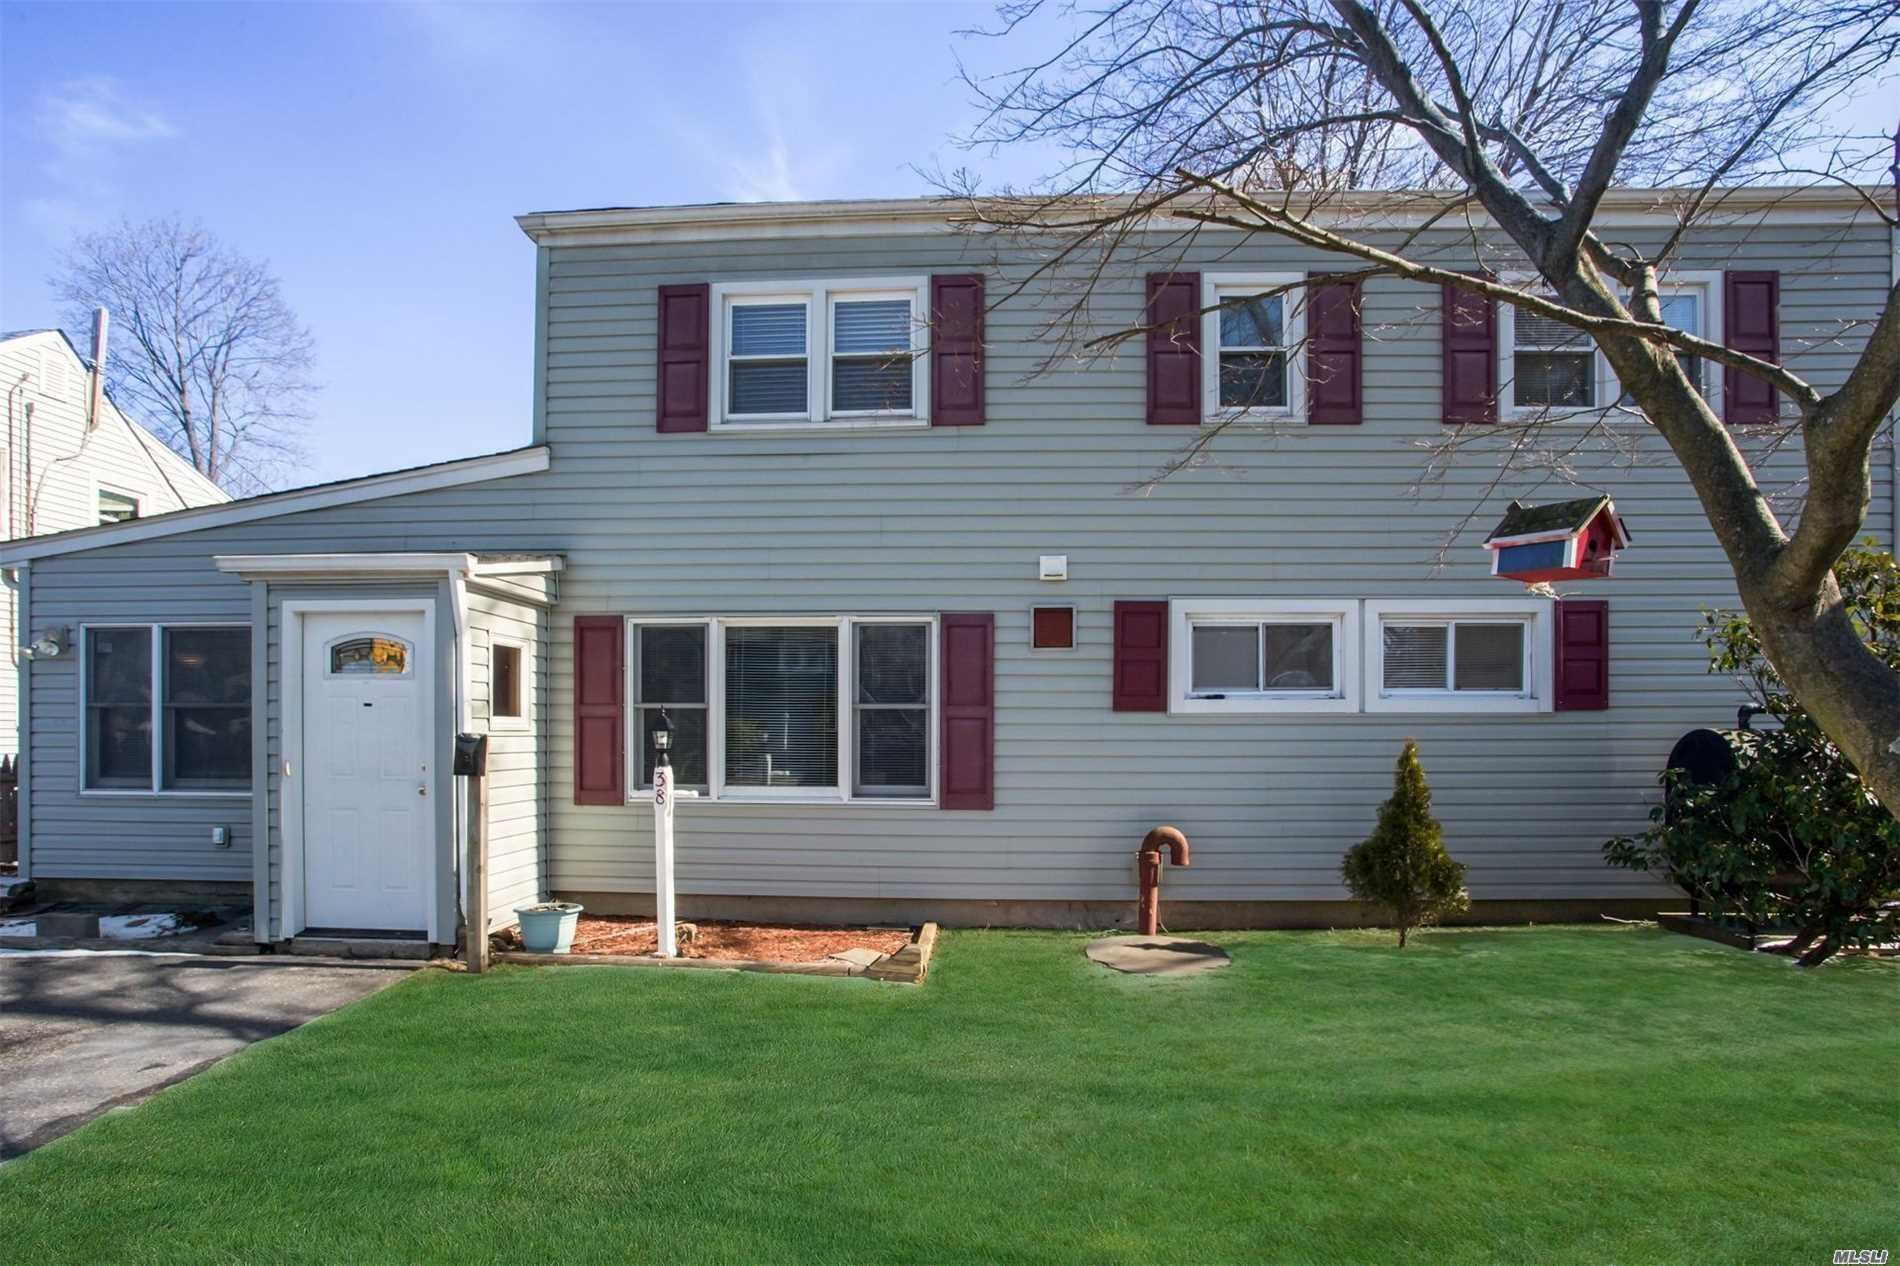 Large Spacious 2246 Square Feet Double Dormered 5 Bedrm, 2 Bathrm, Living Rm, Dining Rm. Eik, Features Newer Vinyl Siding, New Carpet & New Laminate Fls. New W/D will be Installed. Freshly Painted. 2nd Floor Features New Ceramic Bathrm W/Stall Shower. Possible M/D With Proper Permit. Storage Rm. Fenced In Yard. Shed. Make This Your Dream Home!